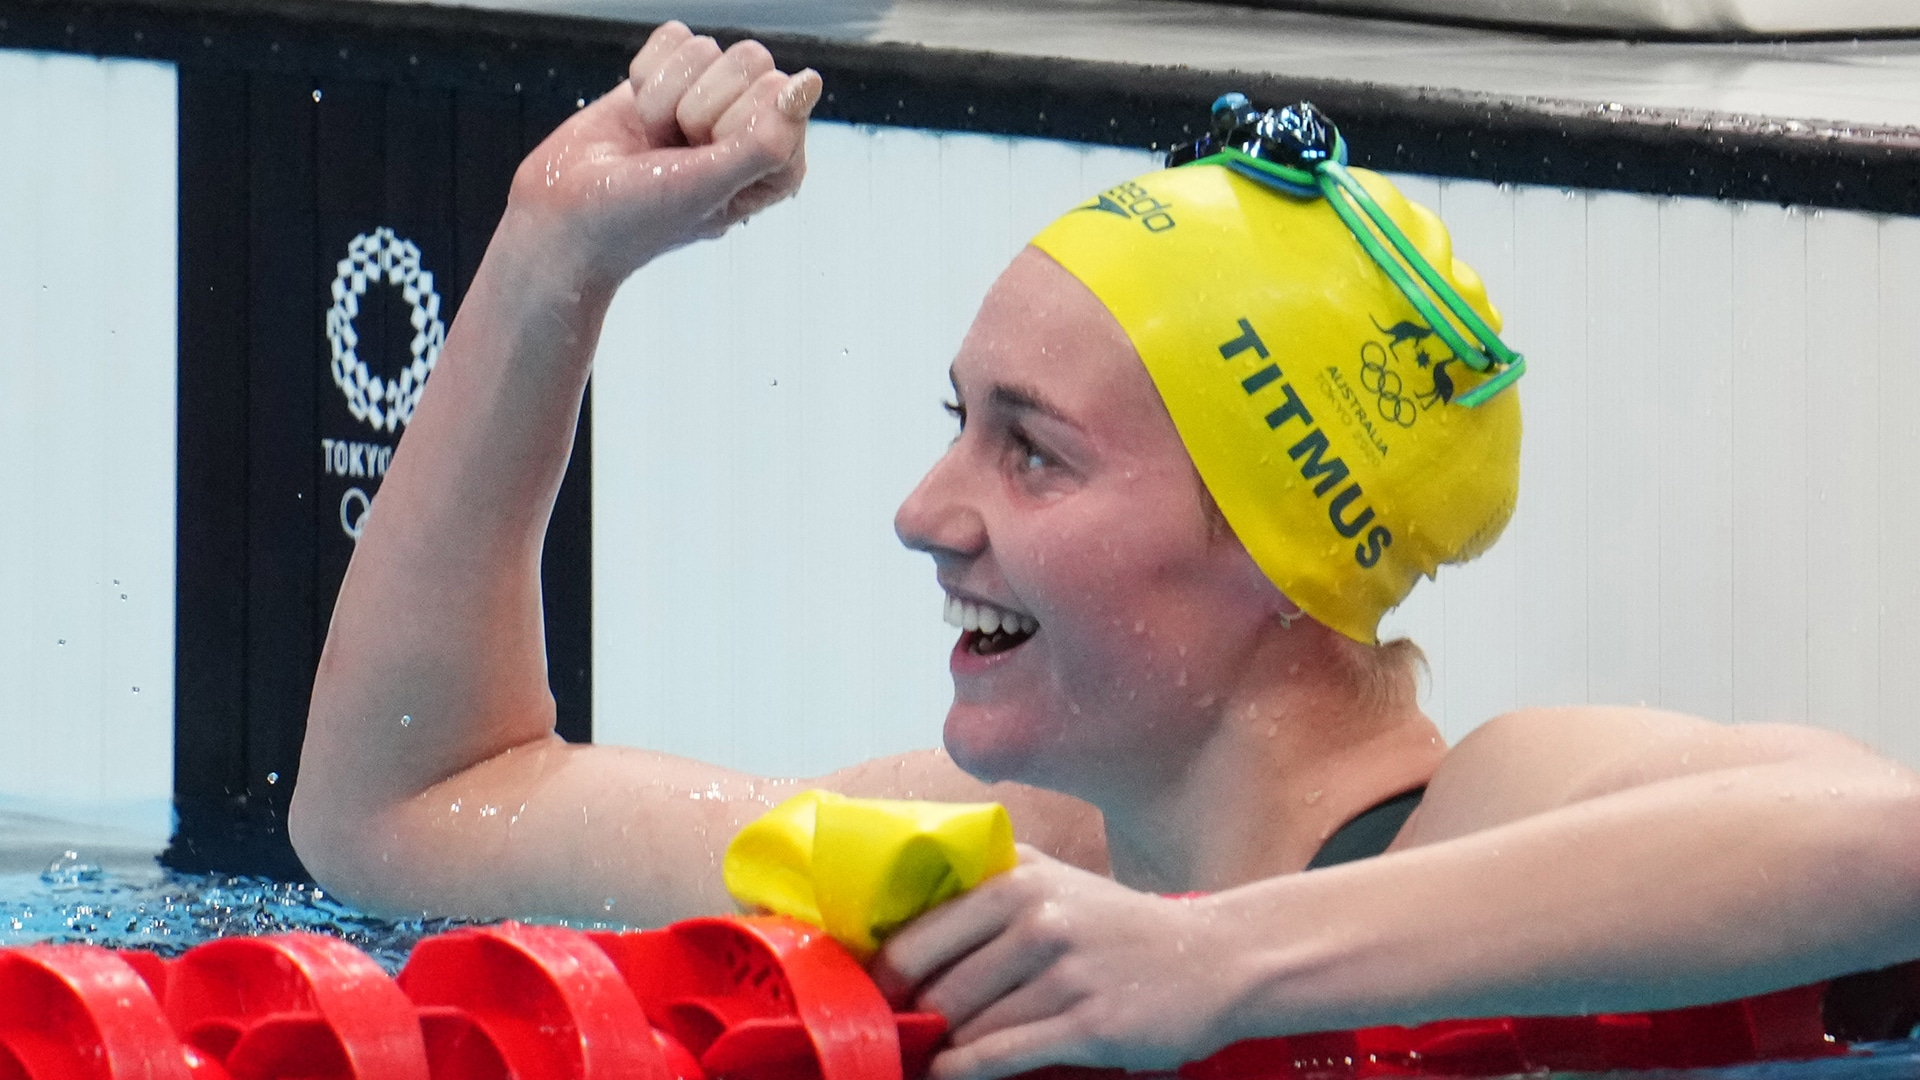 Australia's Ariarne Titmus won her second Olympic gold medal of the Tokyo Games, beating Katie...